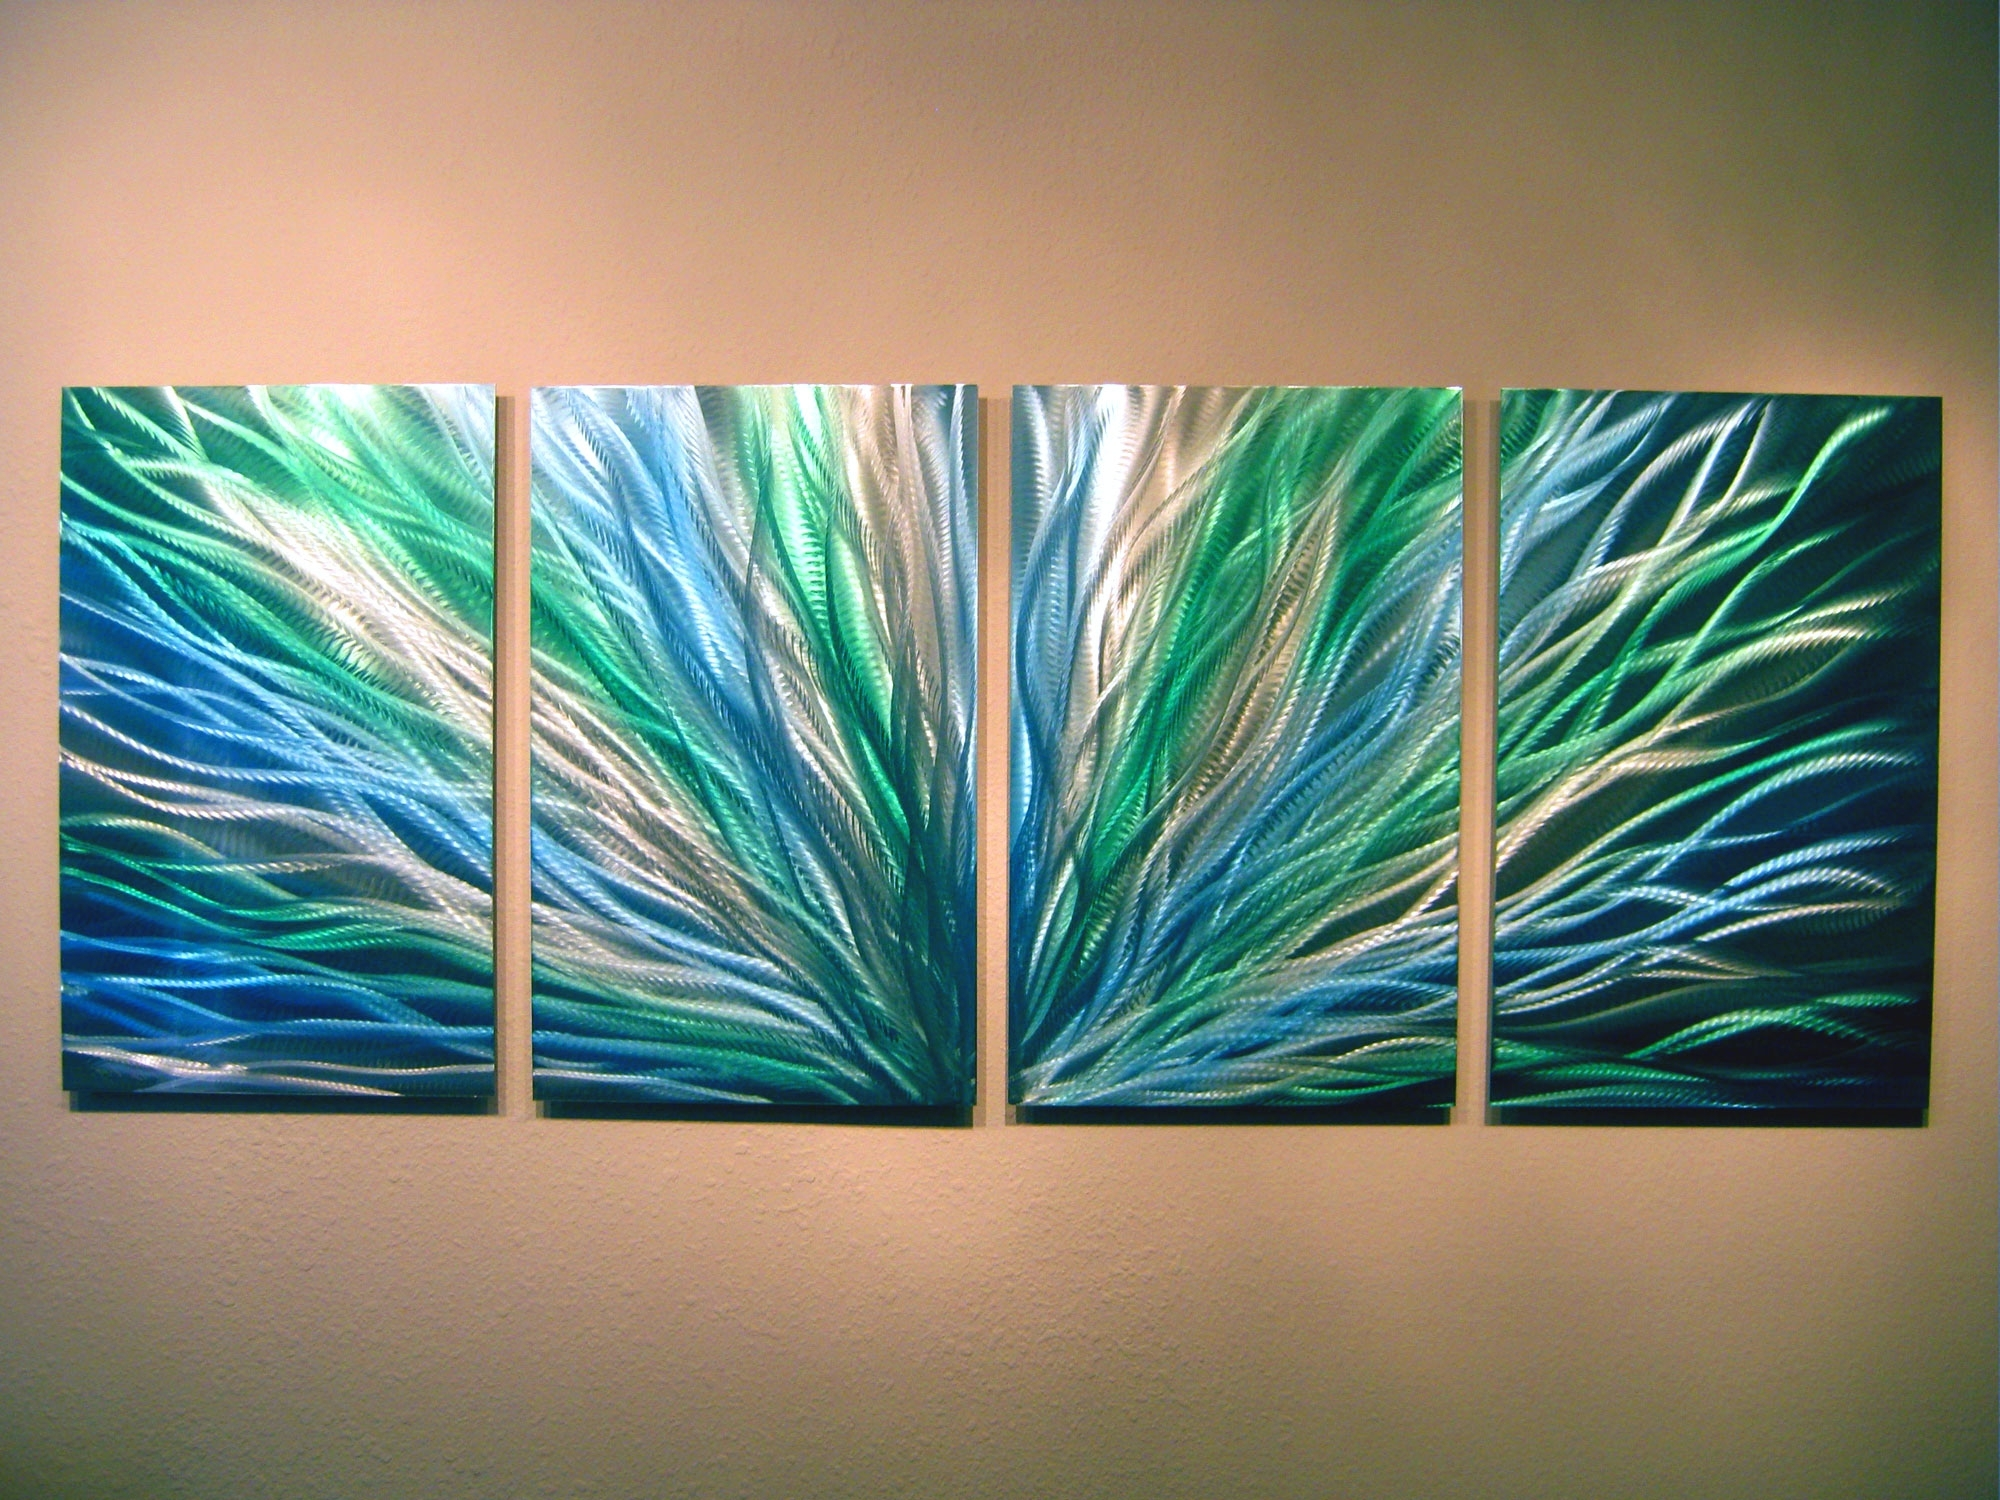 Contemporary Wall Art Throughout Widely Used Radiance Blue Green  Abstract Metal Wall Art Contemporary Modern (View 8 of 15)